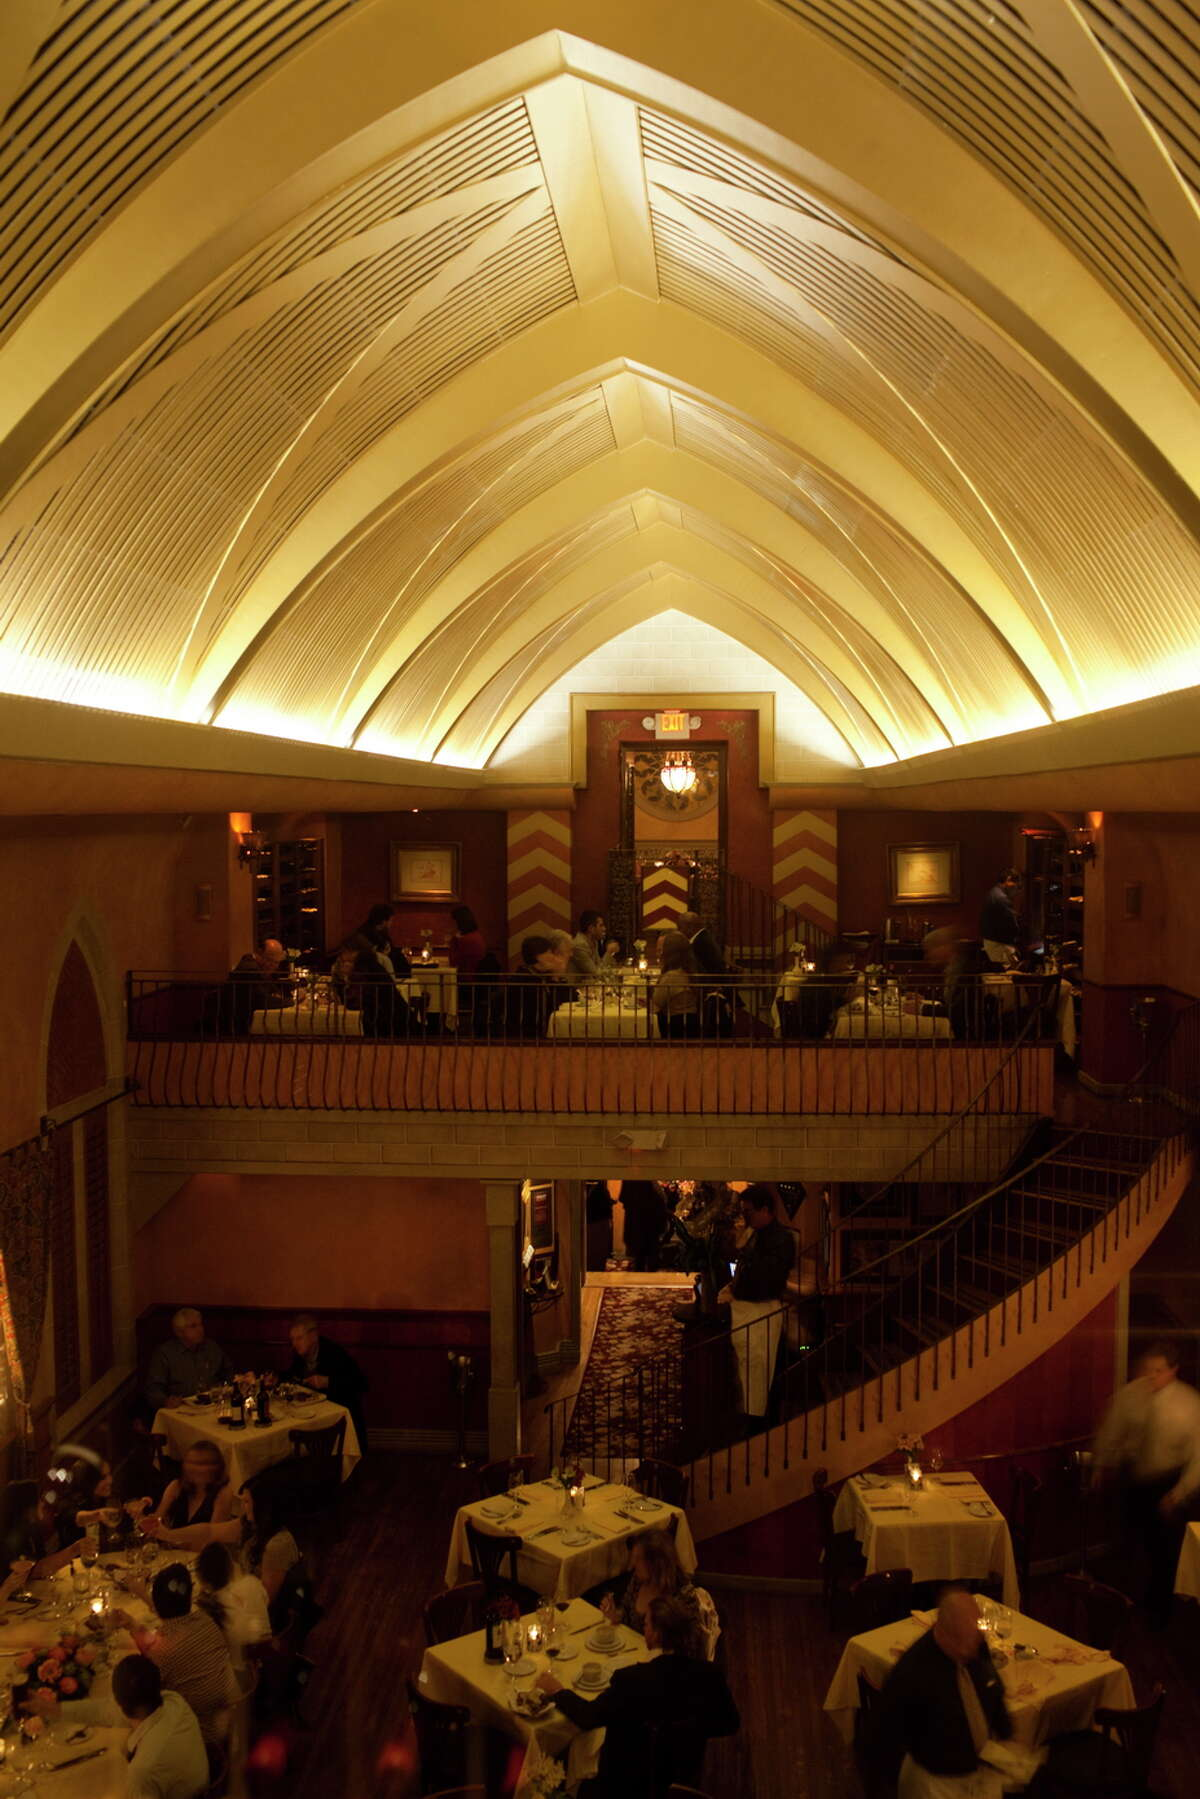 Housed in a renovated 1920s church, Mark's distinctively ecclesiastical, Old World space was considered one of Houston's most romantic restaurants. For One Fifth, co-owner Kevin Floyd said they'll lighten and brighten the interior by uncovering windows and installing clean, modern fixtures to replace some of the old-fashioned hardware. Faux stonework will go; any original stone will remain. The famous balcony, up a curved open staircase, will either be used for private events or an extension of a la carte dining.